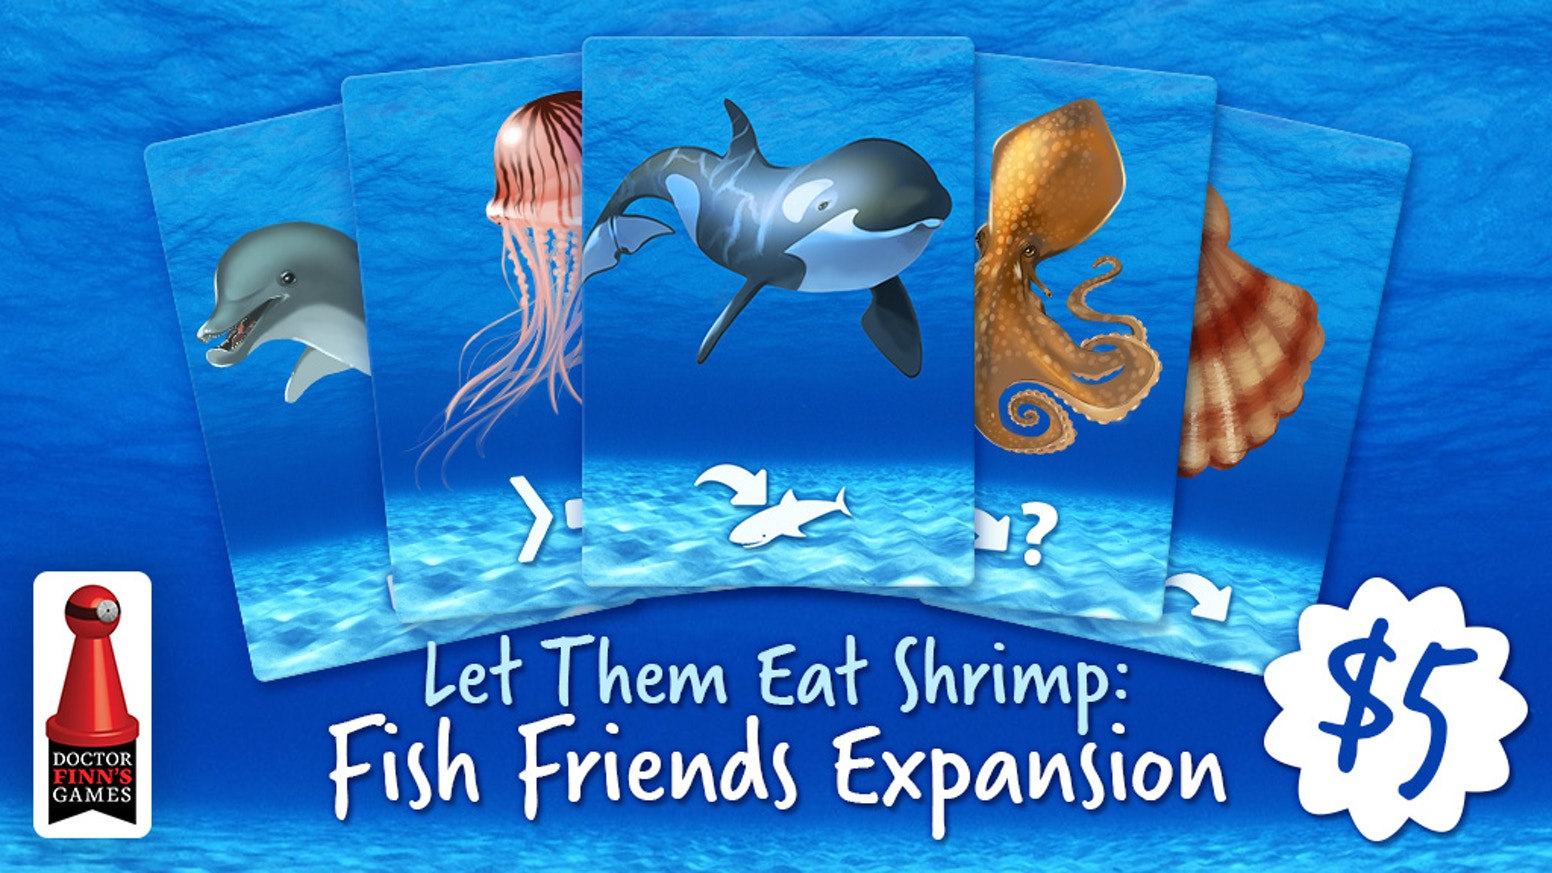 A special campaign for Kickstarter exclusive expansion packs for Let Them Eat Shrimp from the designer of Biblios and Herbaceous.